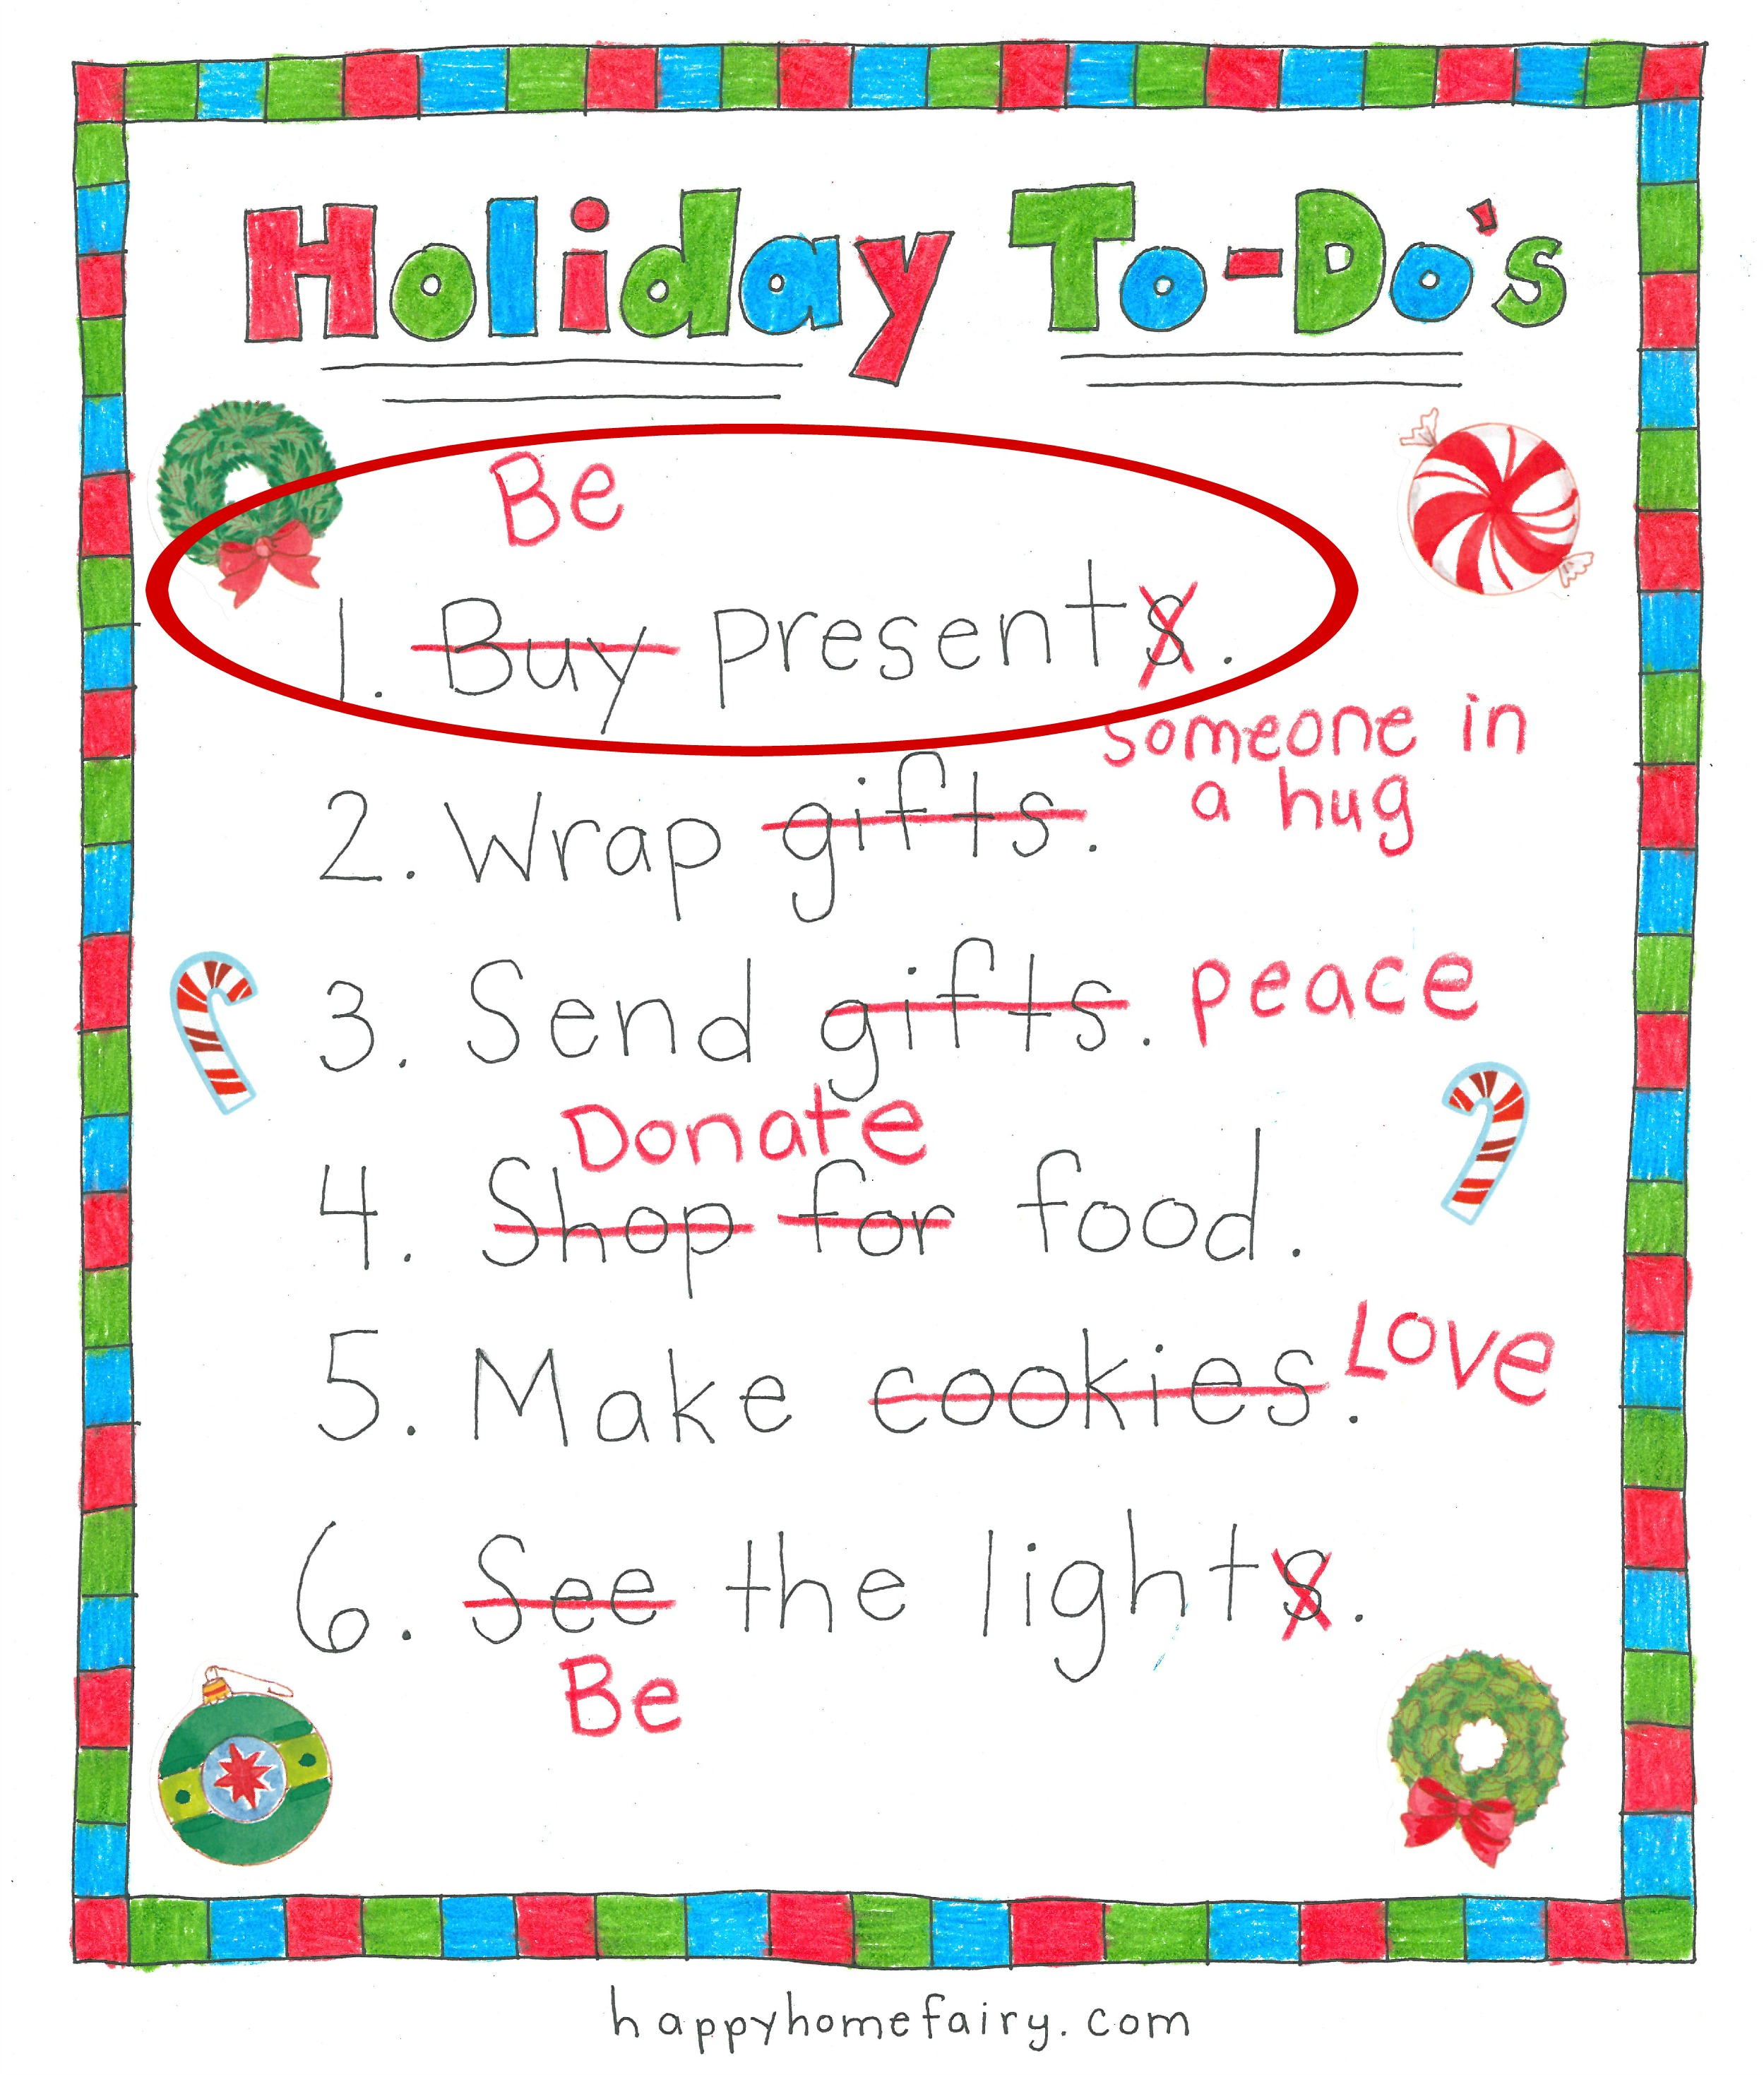 How To Have Christmas And Keep Merry Be Present Happy